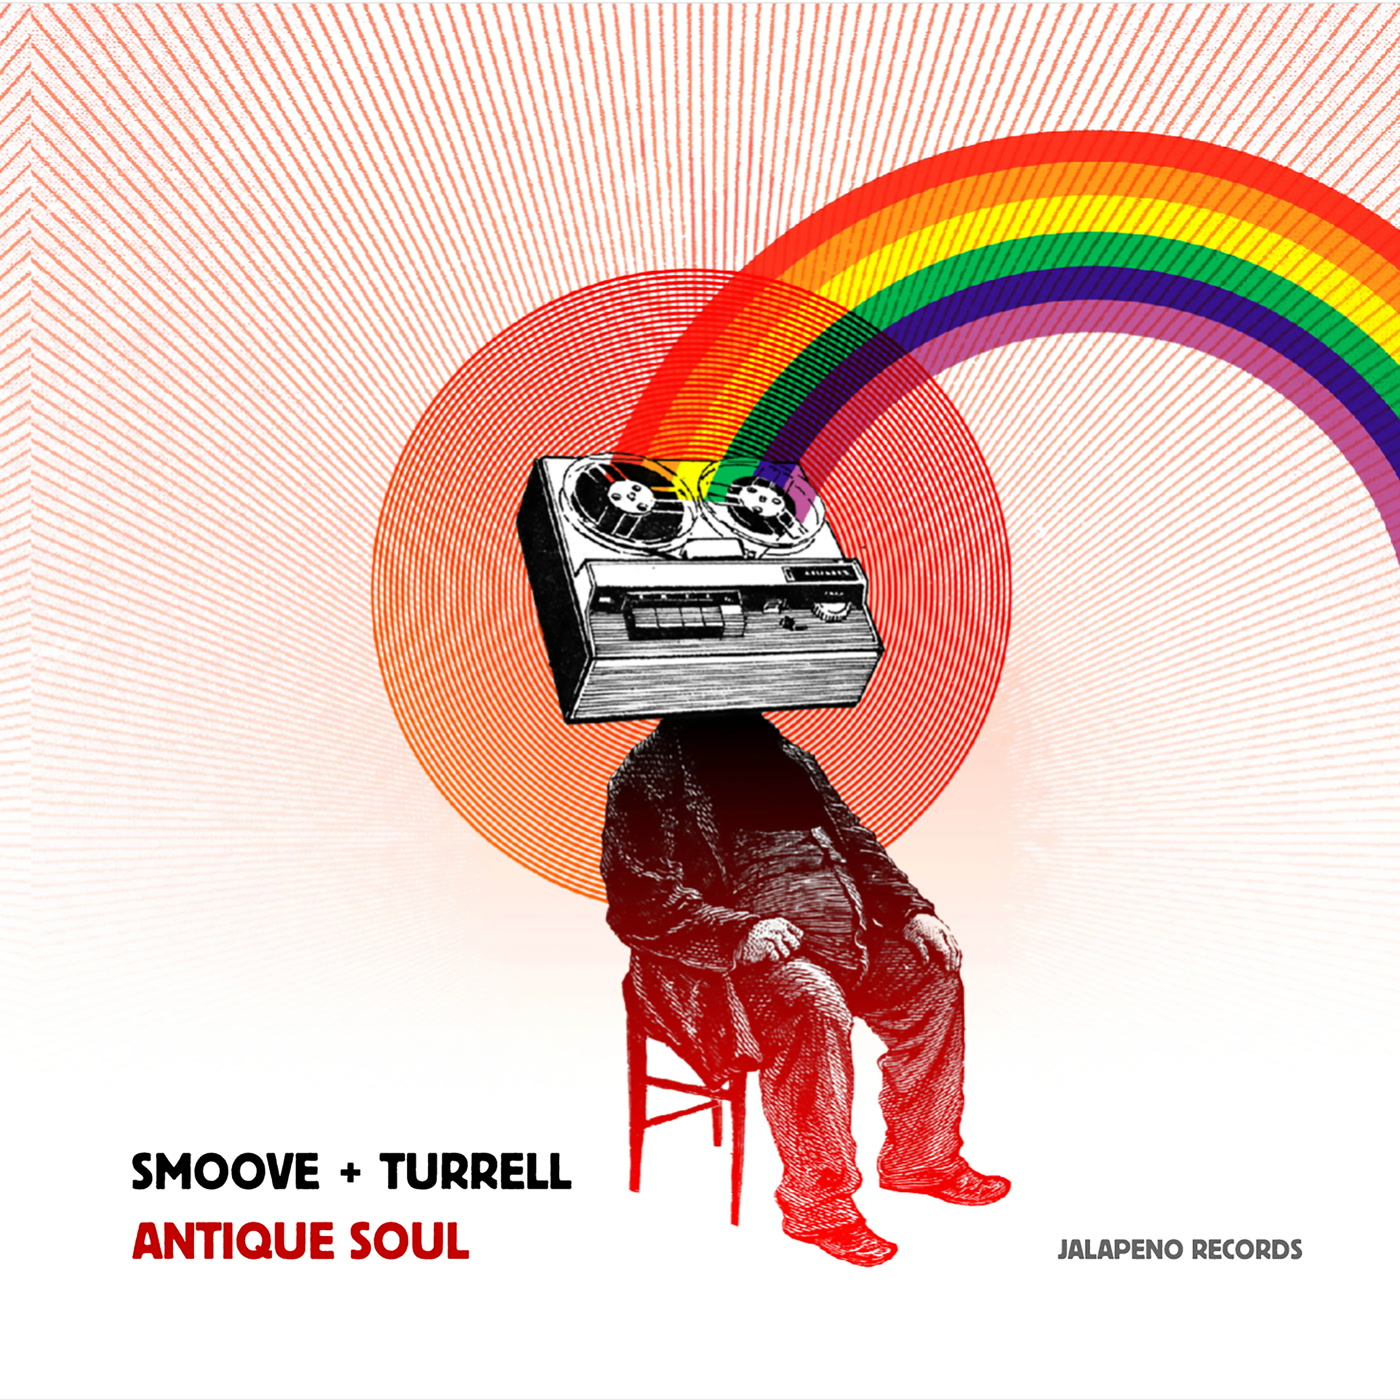 Smoove & Turrell – Antique Soul (Jalapeno Records)